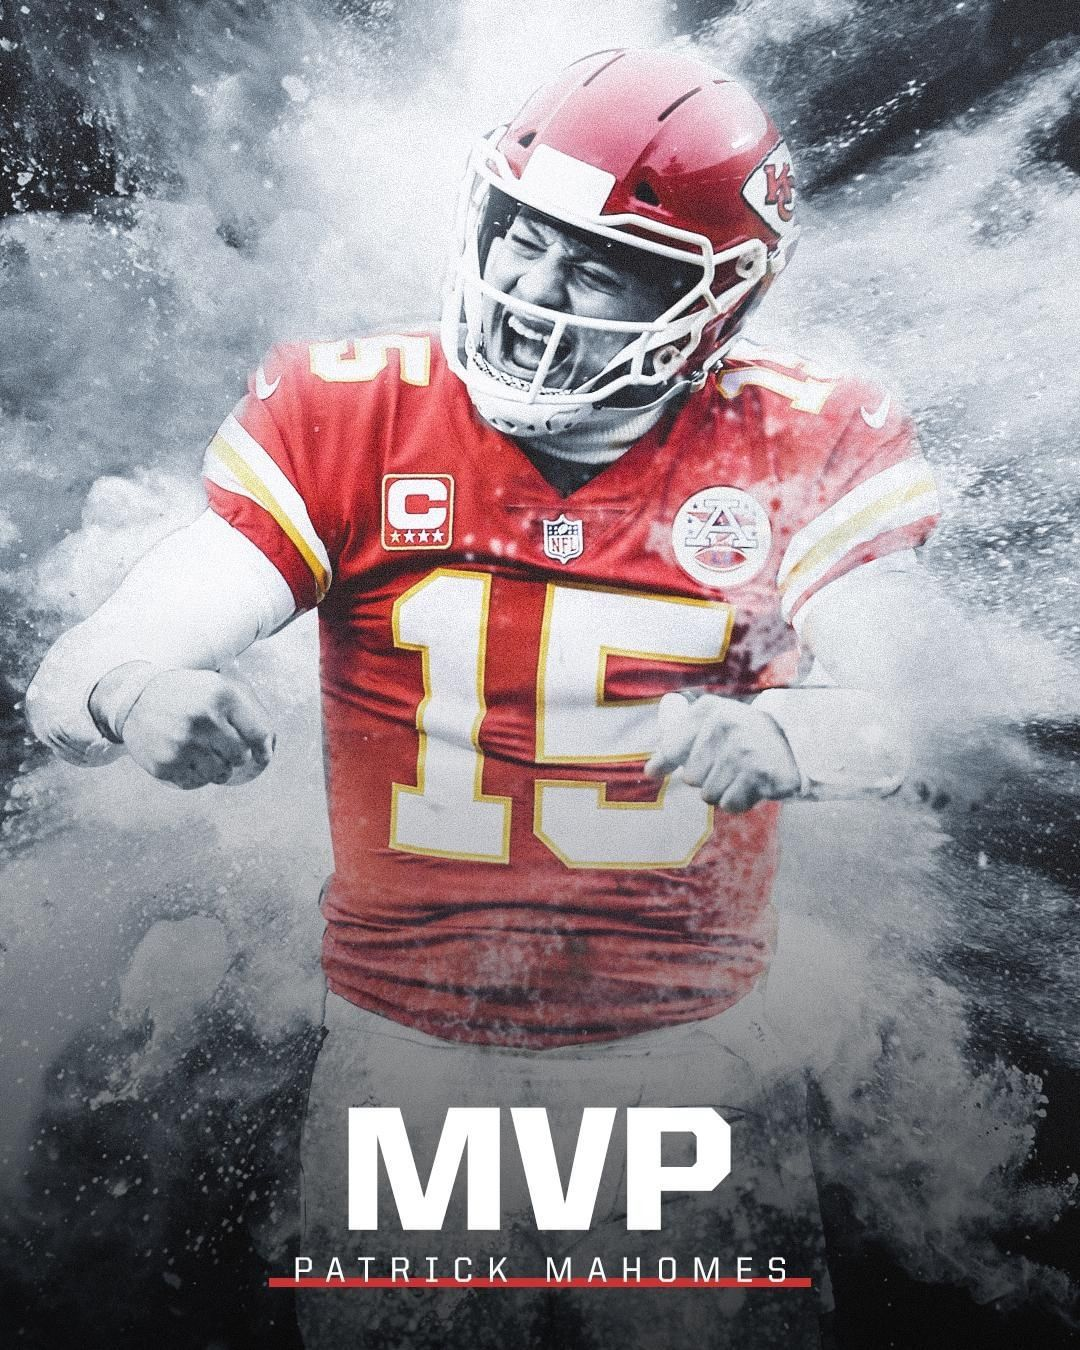 Sportscenter On Instagram Patrick Mahomes Becomes The 1st Chief Ever To Win Nfl Mvp Kc Chiefs Football Kansas City Chiefs Kansas City Chiefs Football